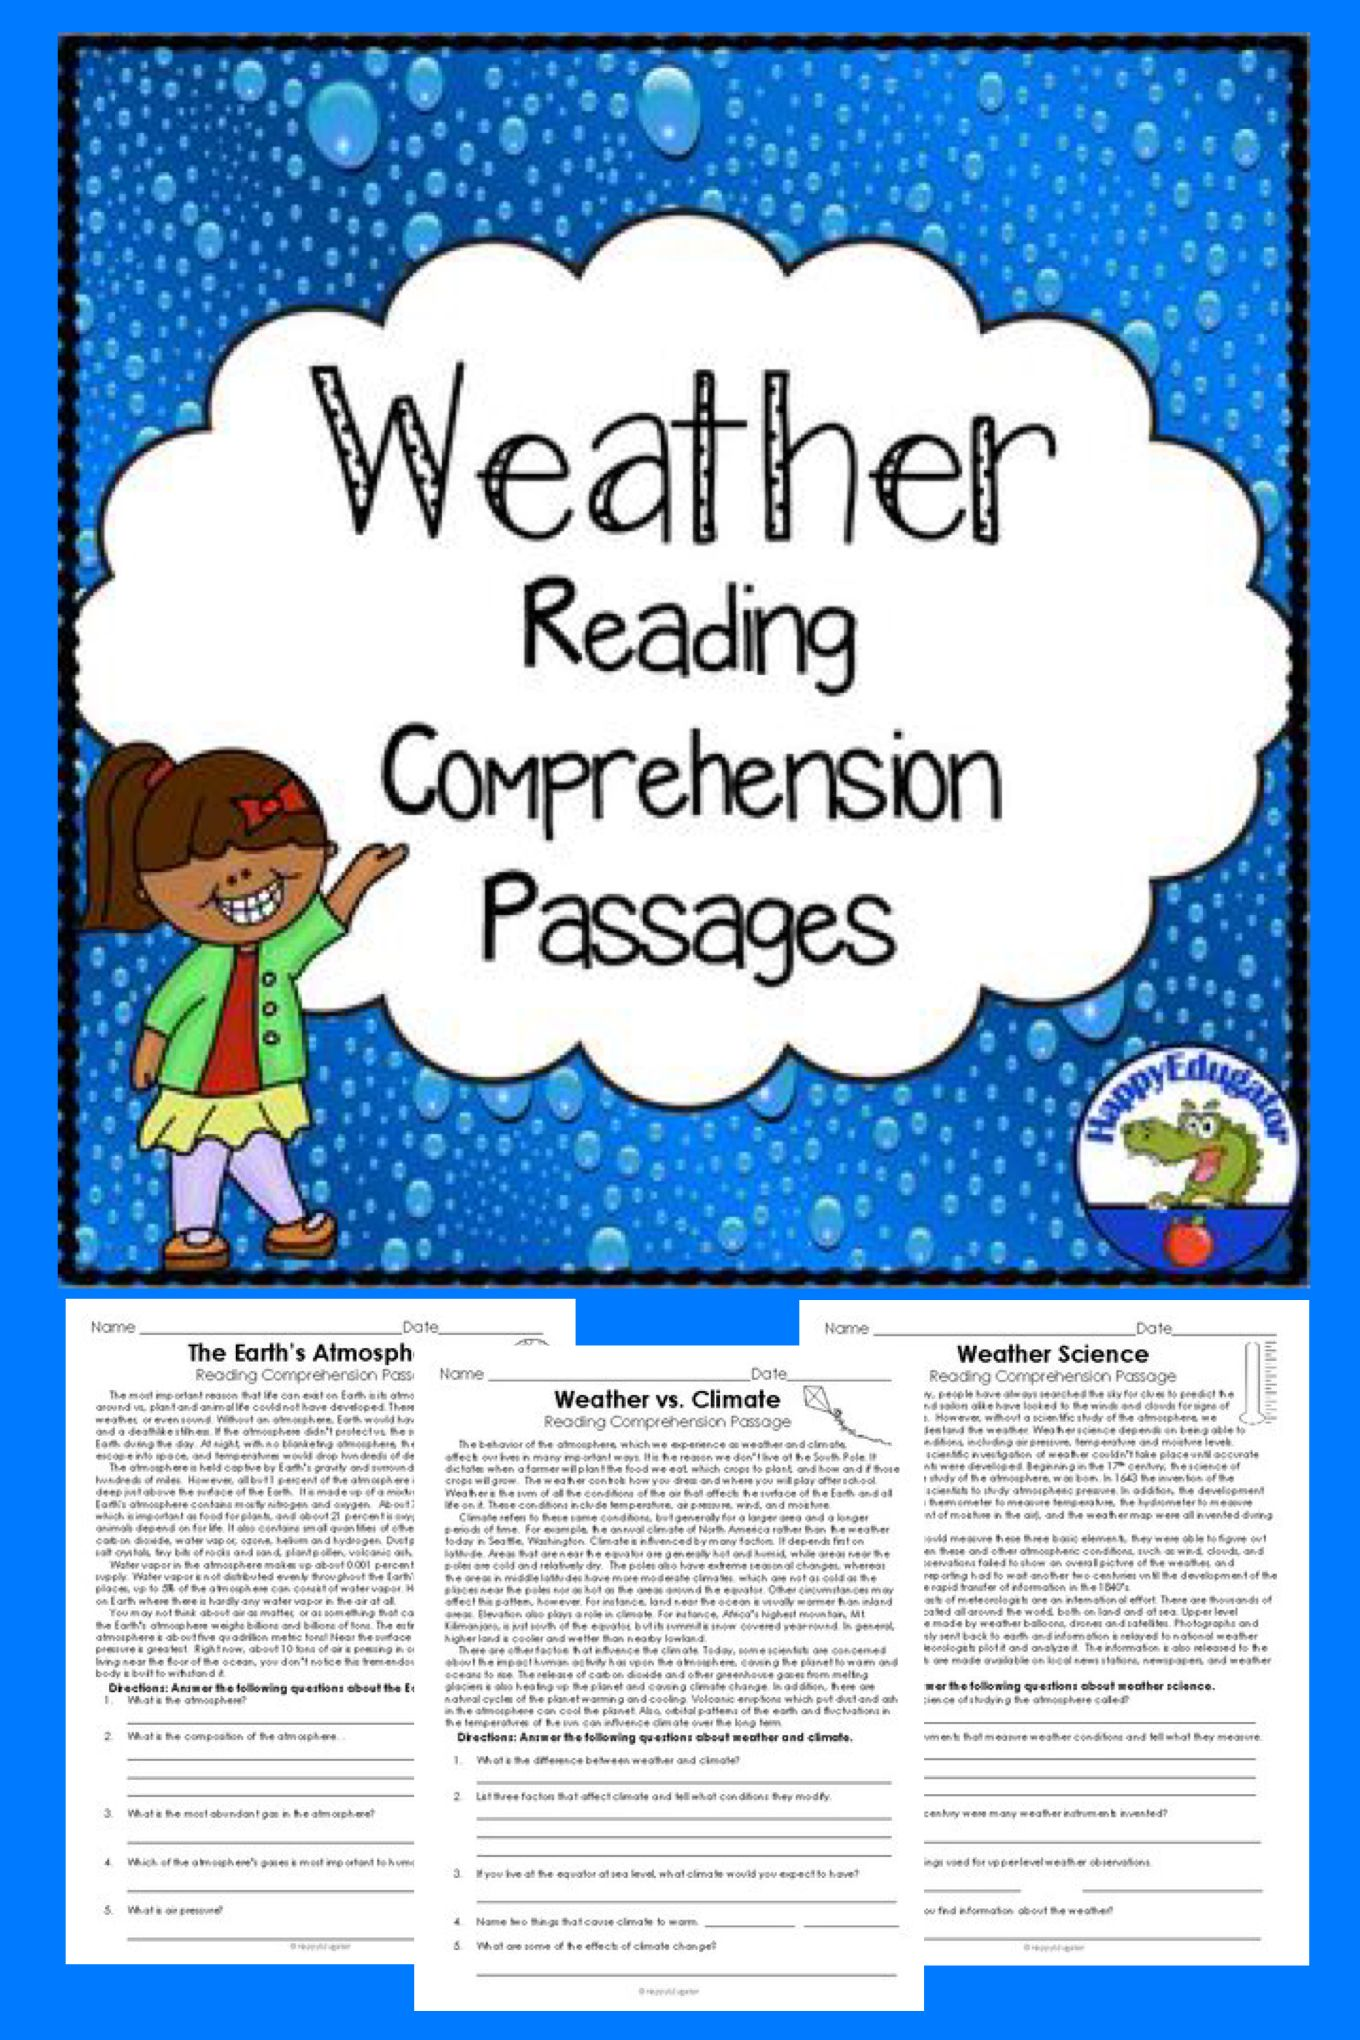 Weather Reading Comprehension Passages And Questions Digital Distance Learning Reading Comprehension Passages Comprehension Passage Reading Comprehension [ 2040 x 1360 Pixel ]